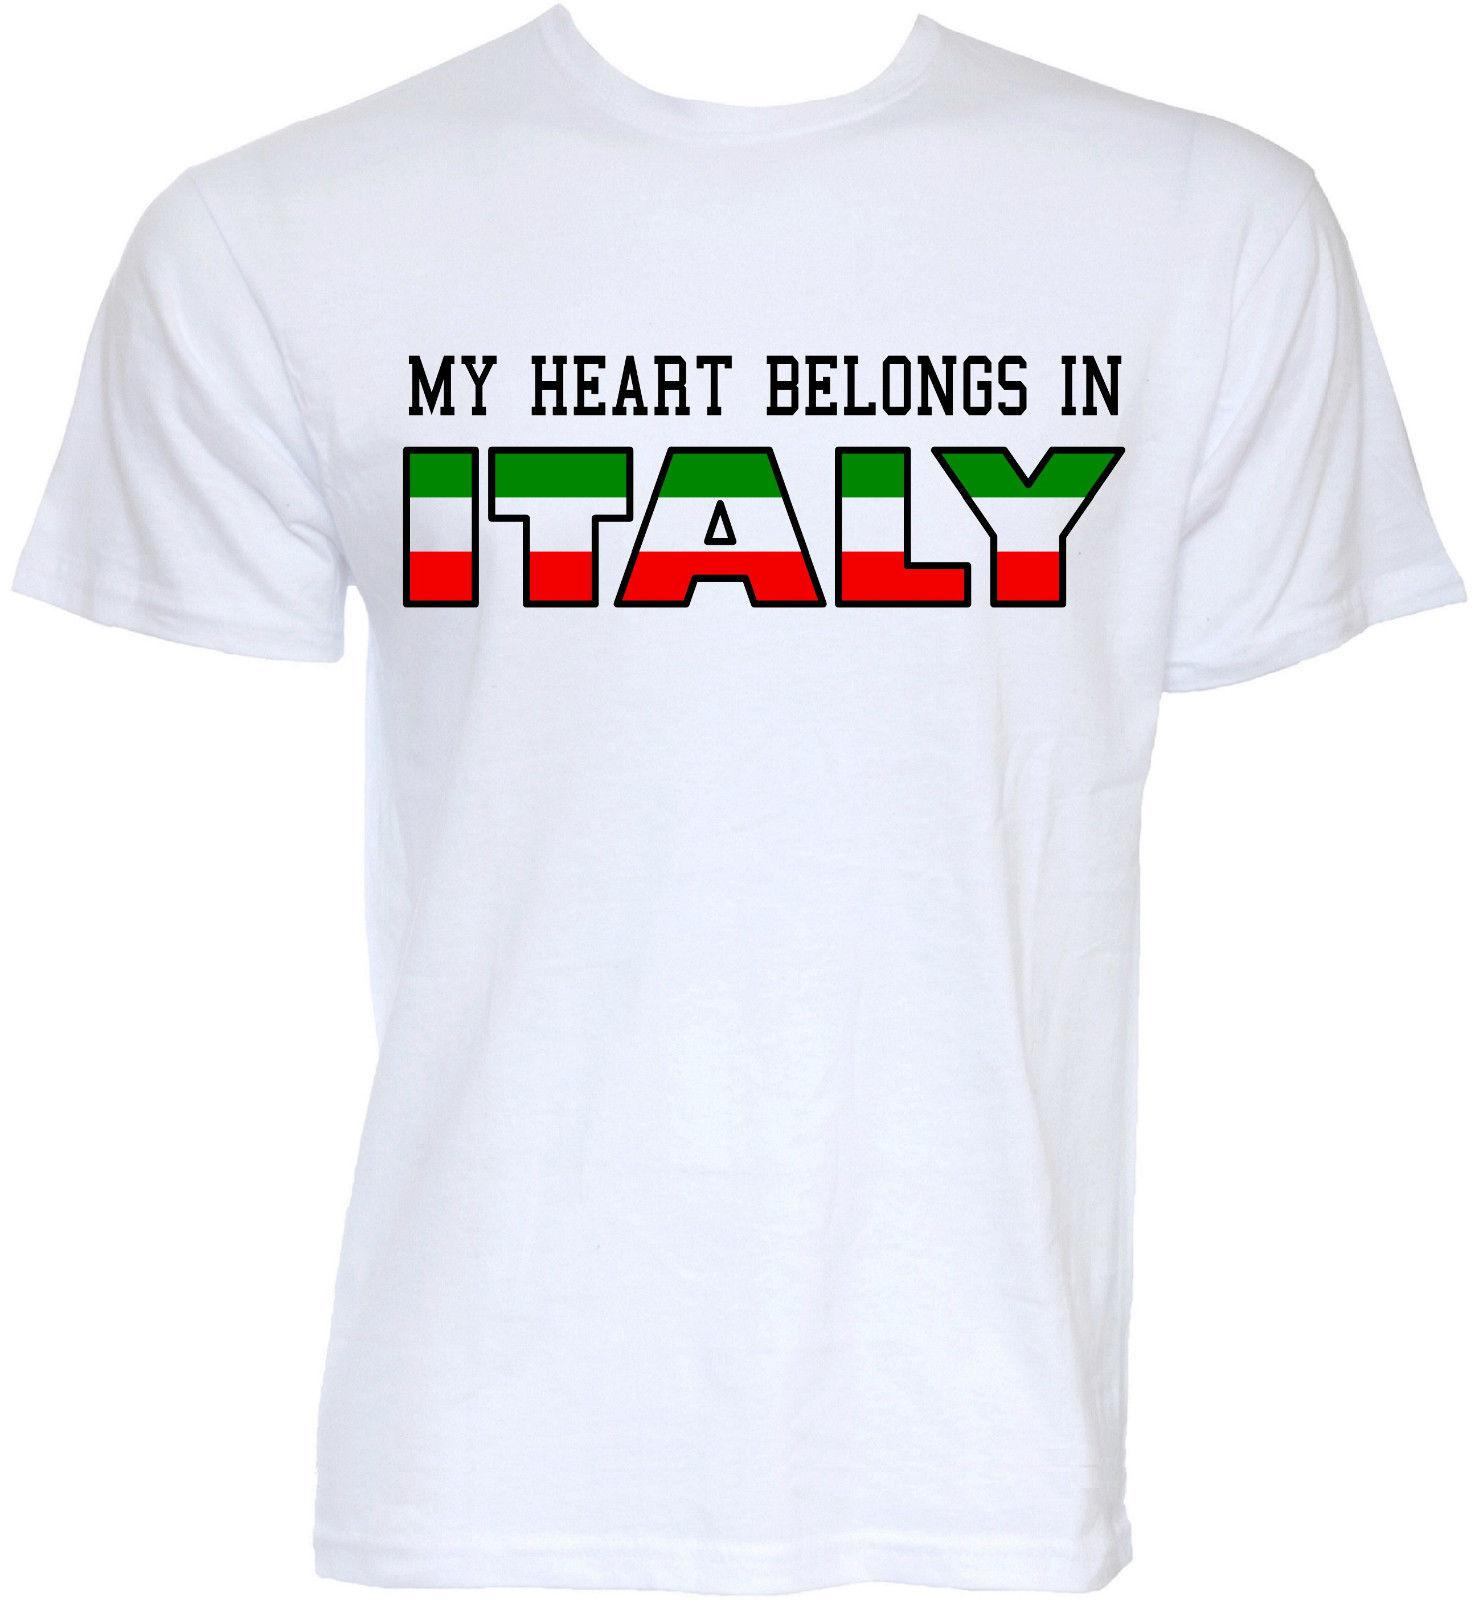 51fe651e Mens Funny Cool Novelty Italian Italy Slogan Flag Joke T Shirts Rude Love  Gifts O Neck Fashion Casual High Quality Print T Shirt Funny T Shirt  Awesome T ...